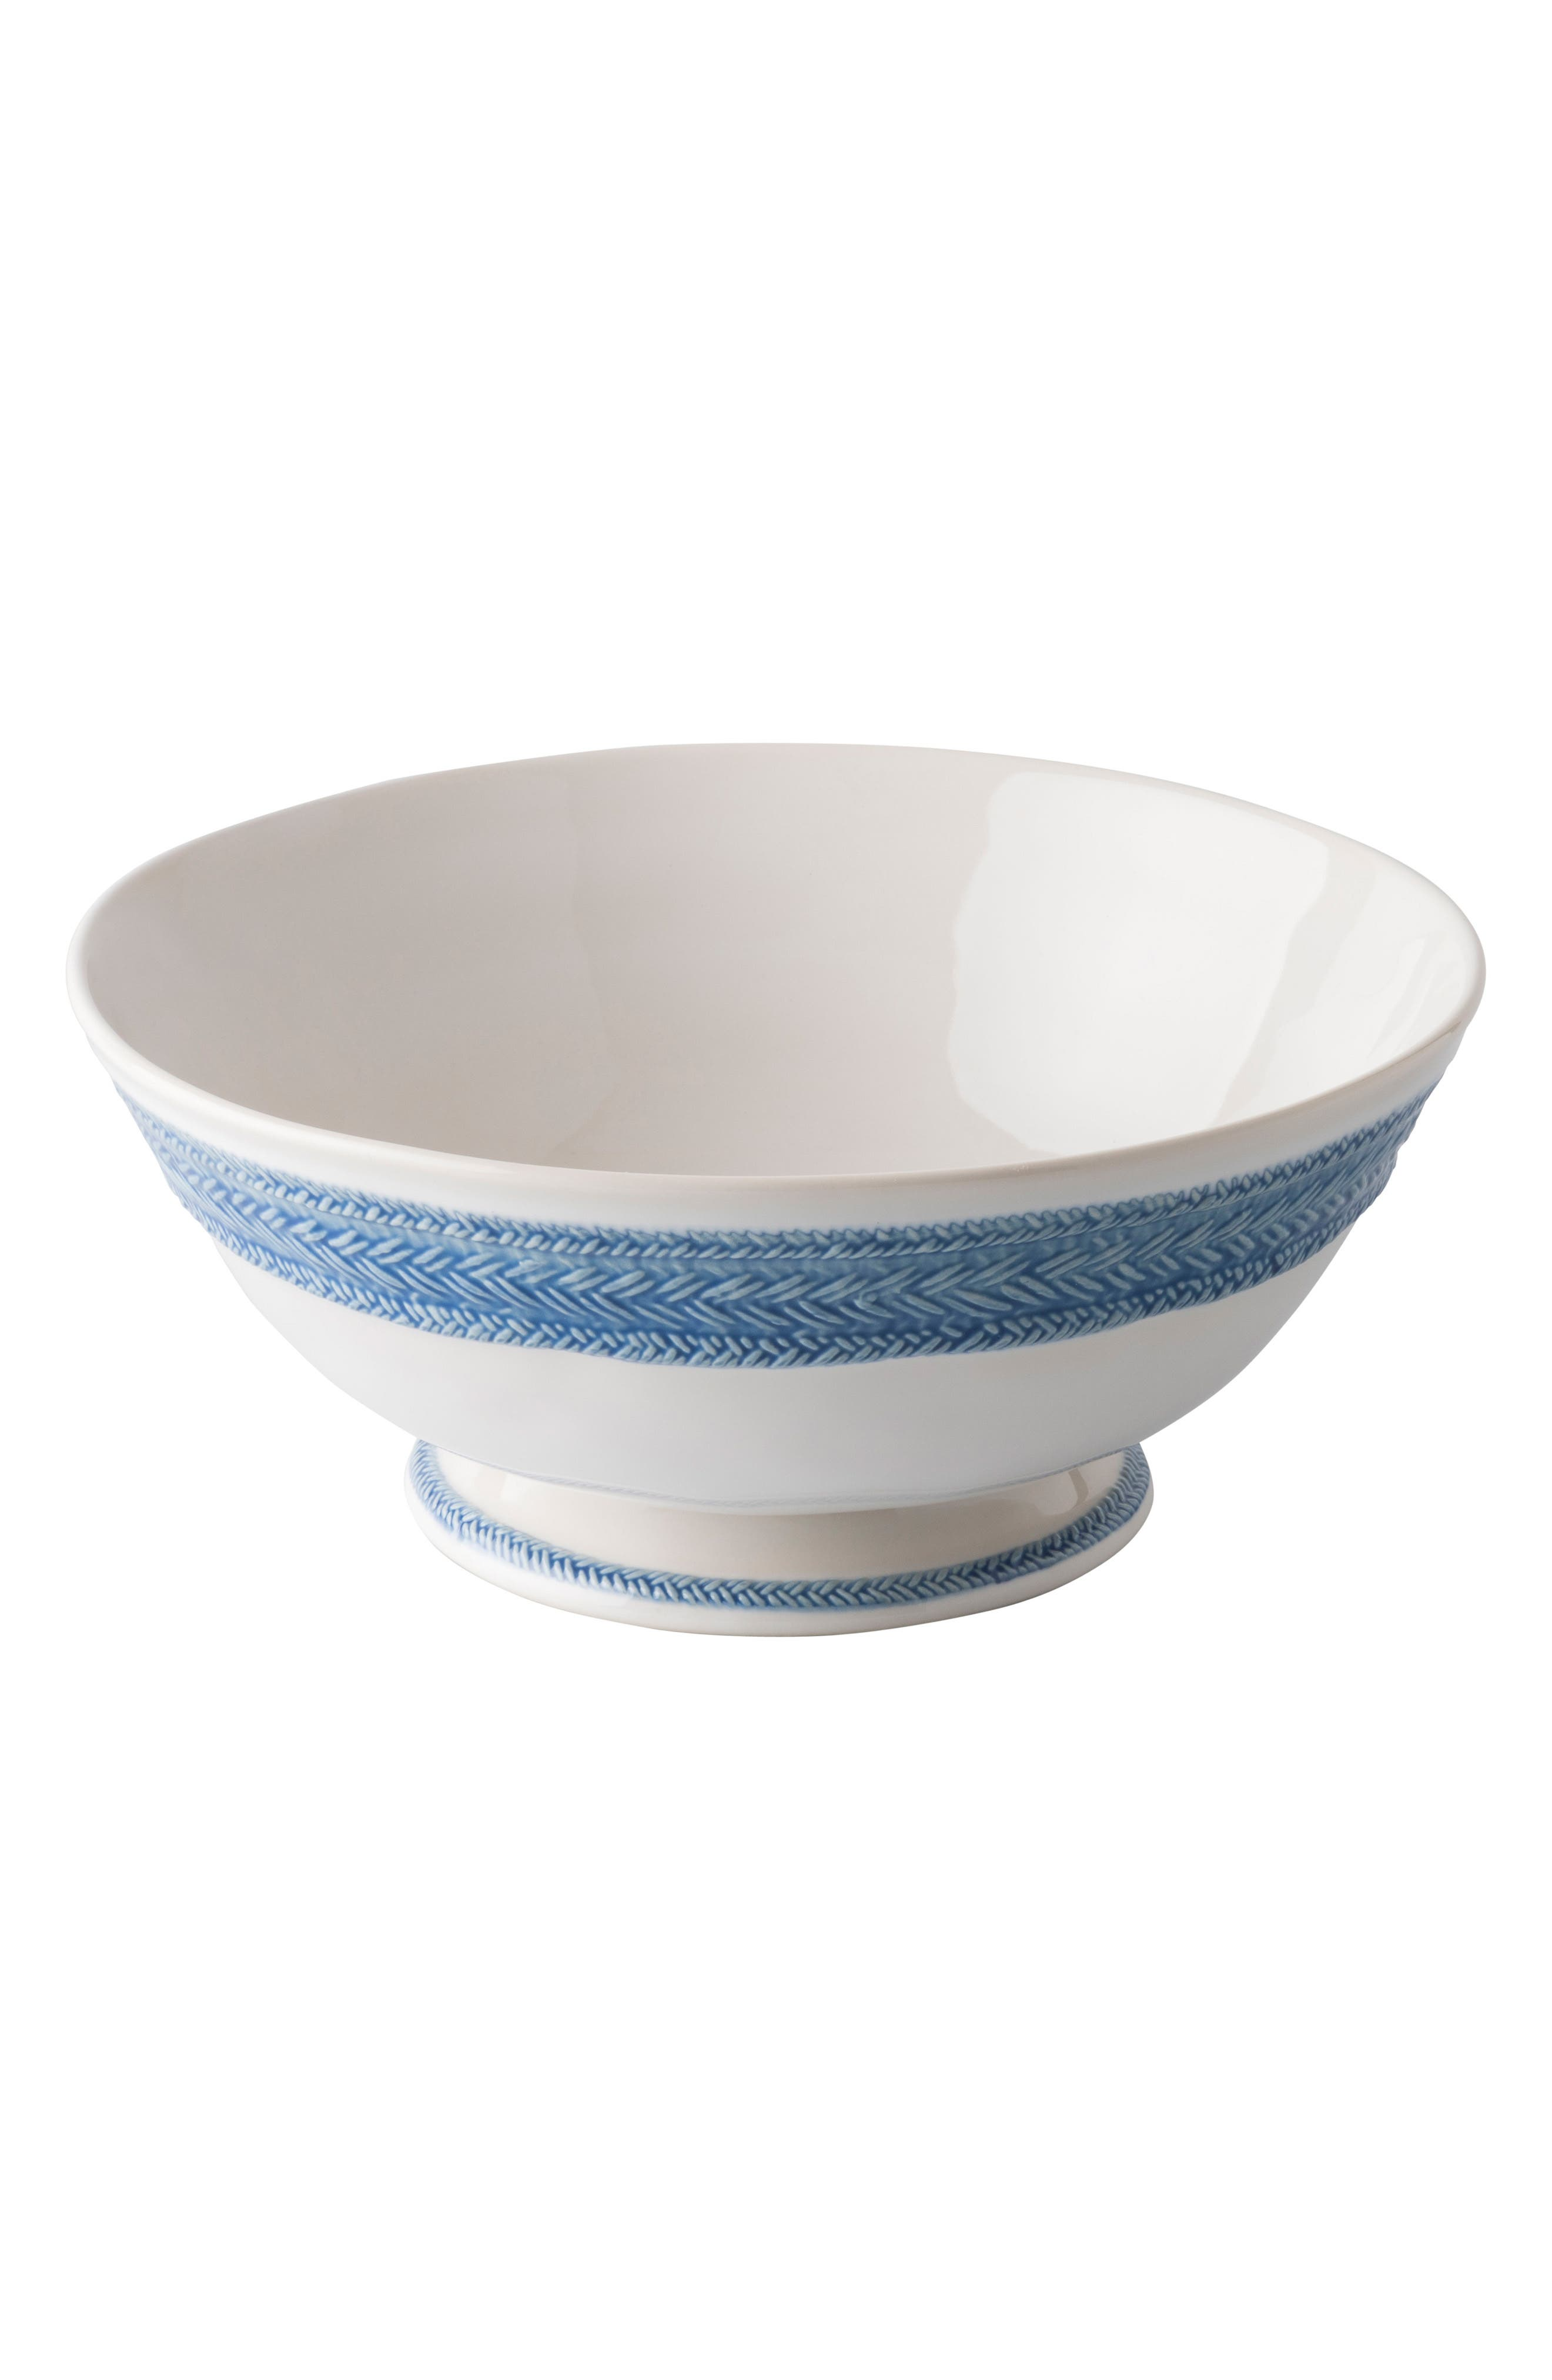 Le Panier Footed Fruit Bowl,                             Alternate thumbnail 2, color,                             WHITEWASH/ DELFT BLUE